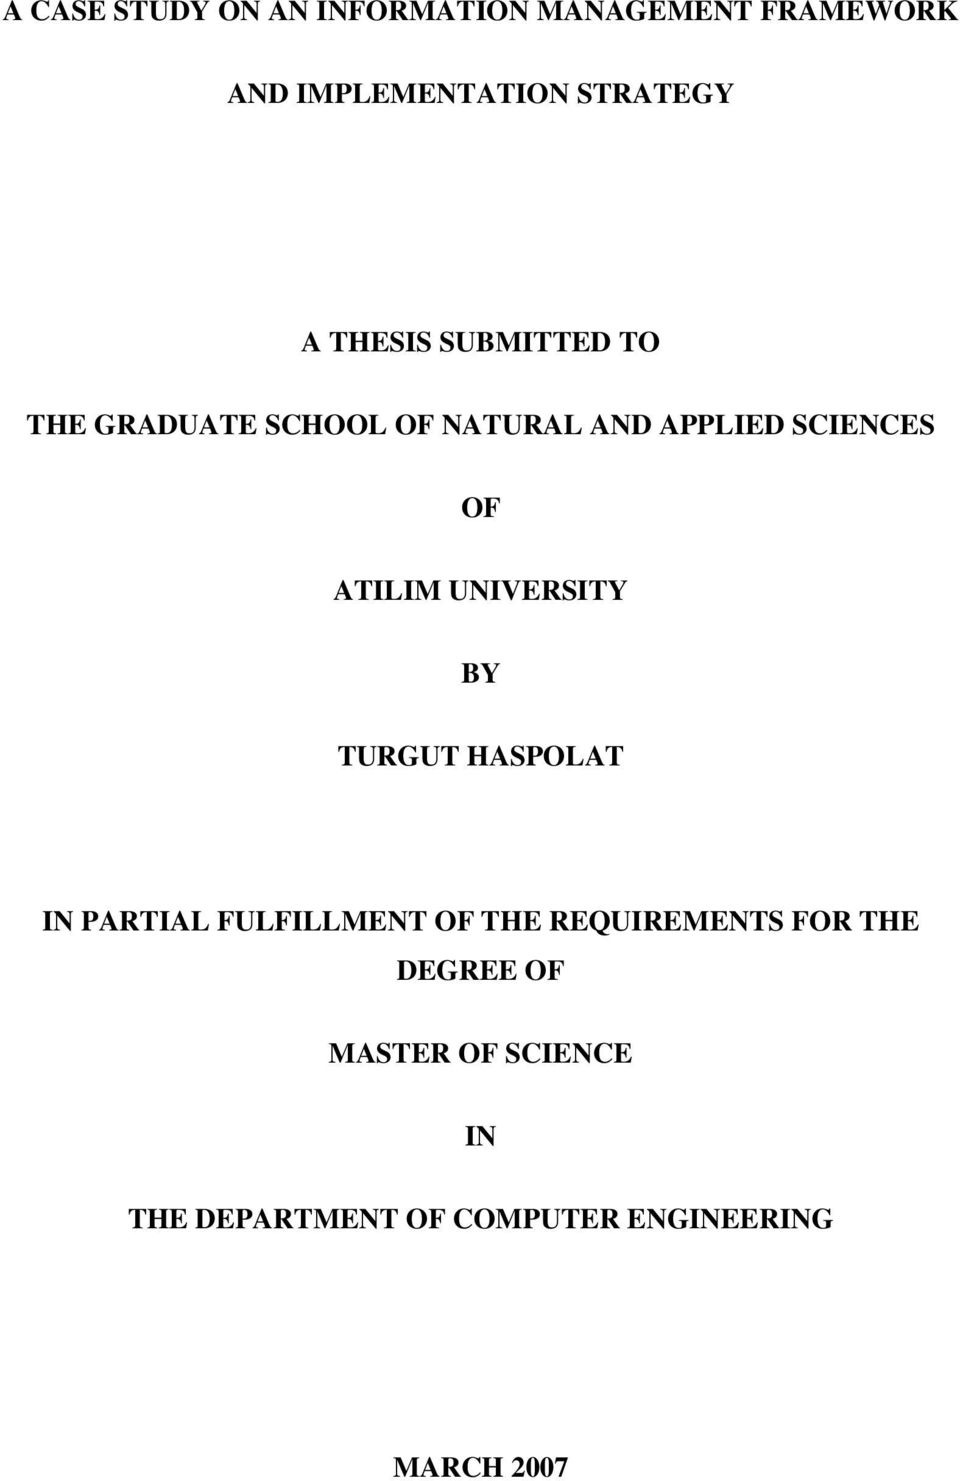 UNIVERSITY BY TURGUT HASPOLAT IN PARTIAL FULFILLMENT OF THE REQUIREMENTS FOR THE